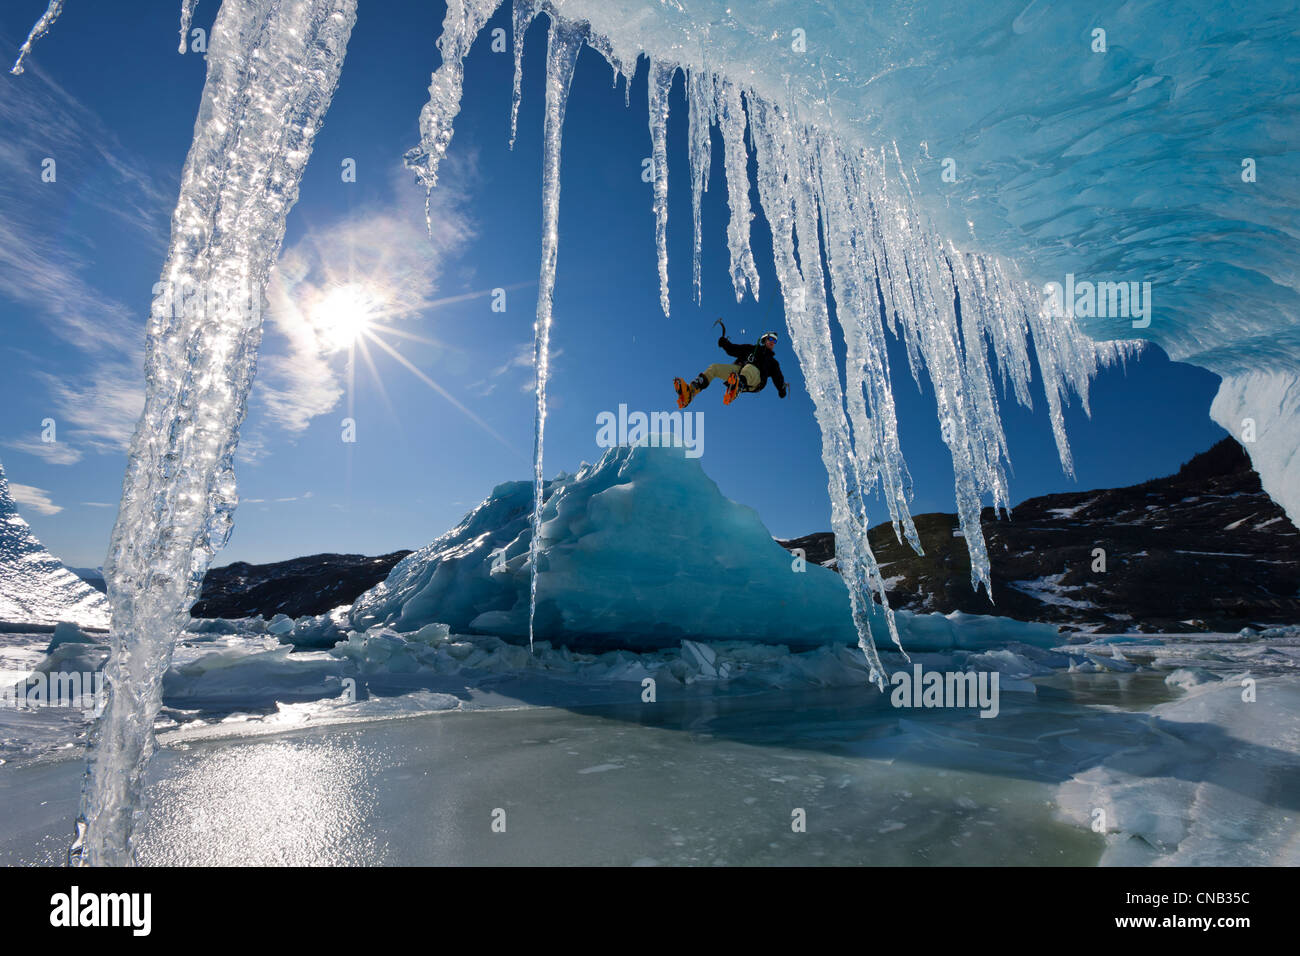 COMPOSITE: Sun shines through icicles hanging on an iceberg as an ice climber rappels over the edge, Mendenhall - Stock Image